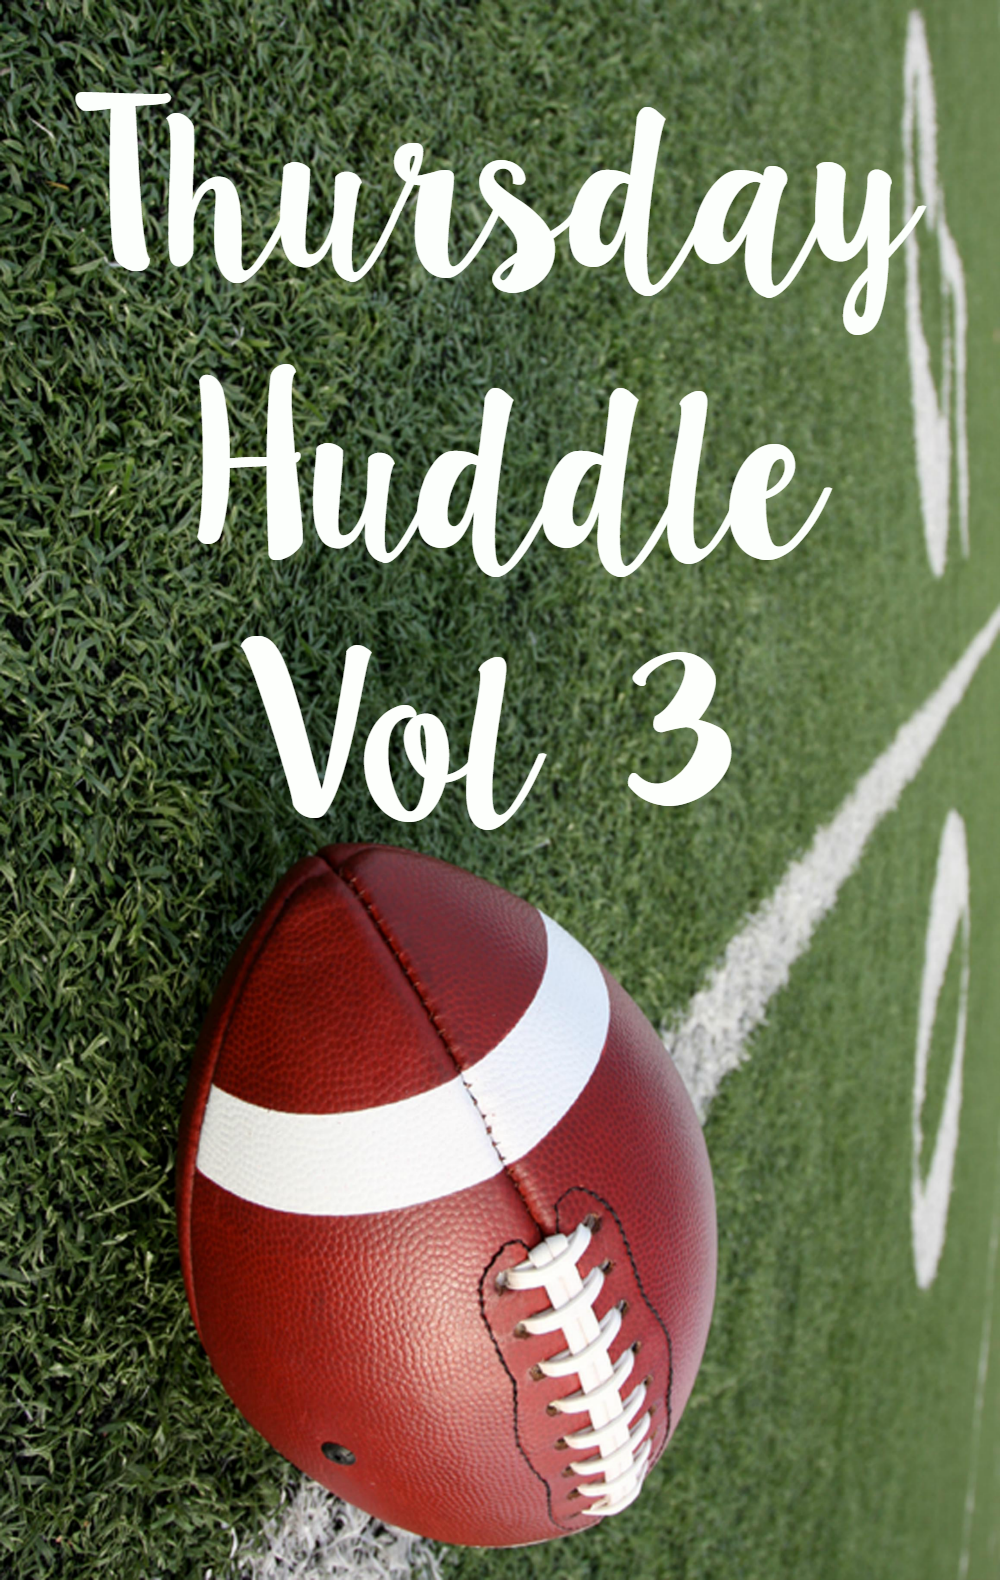 thursday-huddle-vol3